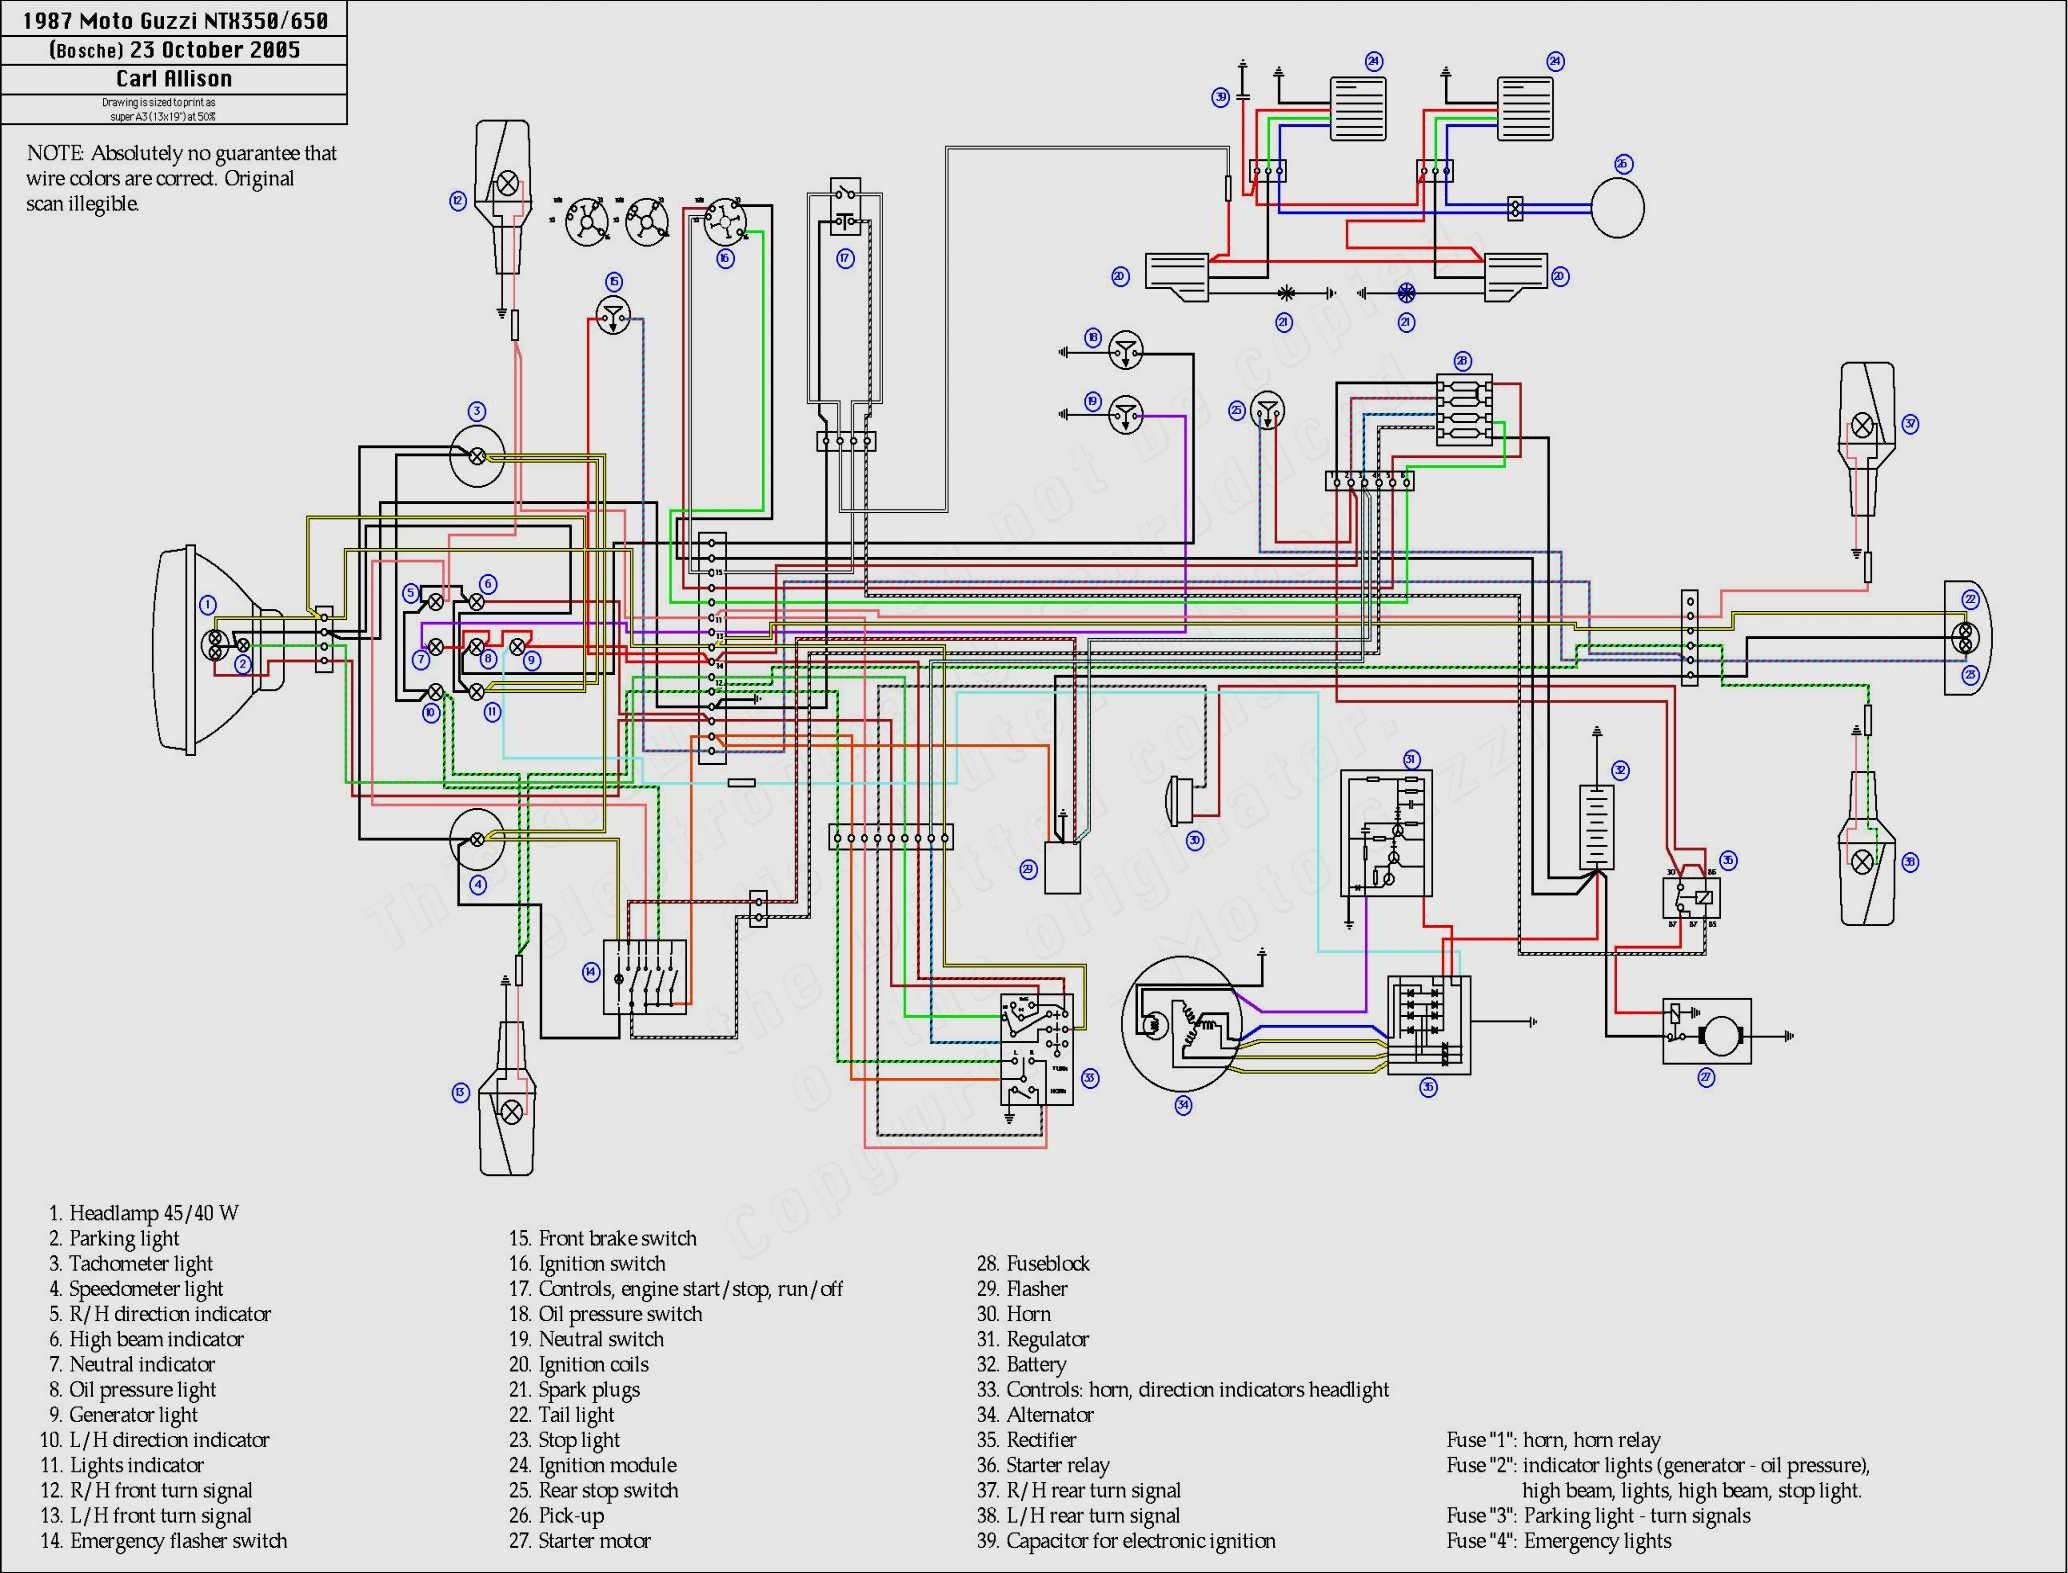 New Wiring Diagram Car Indicators #diagramsample ... on electrical diagrams, series and parallel circuits diagrams, honda motorcycle repair diagrams, friendship bracelet diagrams, engine diagrams, sincgars radio configurations diagrams, troubleshooting diagrams, switch diagrams, hvac diagrams, lighting diagrams, gmc fuse box diagrams, battery diagrams, electronic circuit diagrams, internet of things diagrams, transformer diagrams, motor diagrams, pinout diagrams, led circuit diagrams, smart car diagrams,